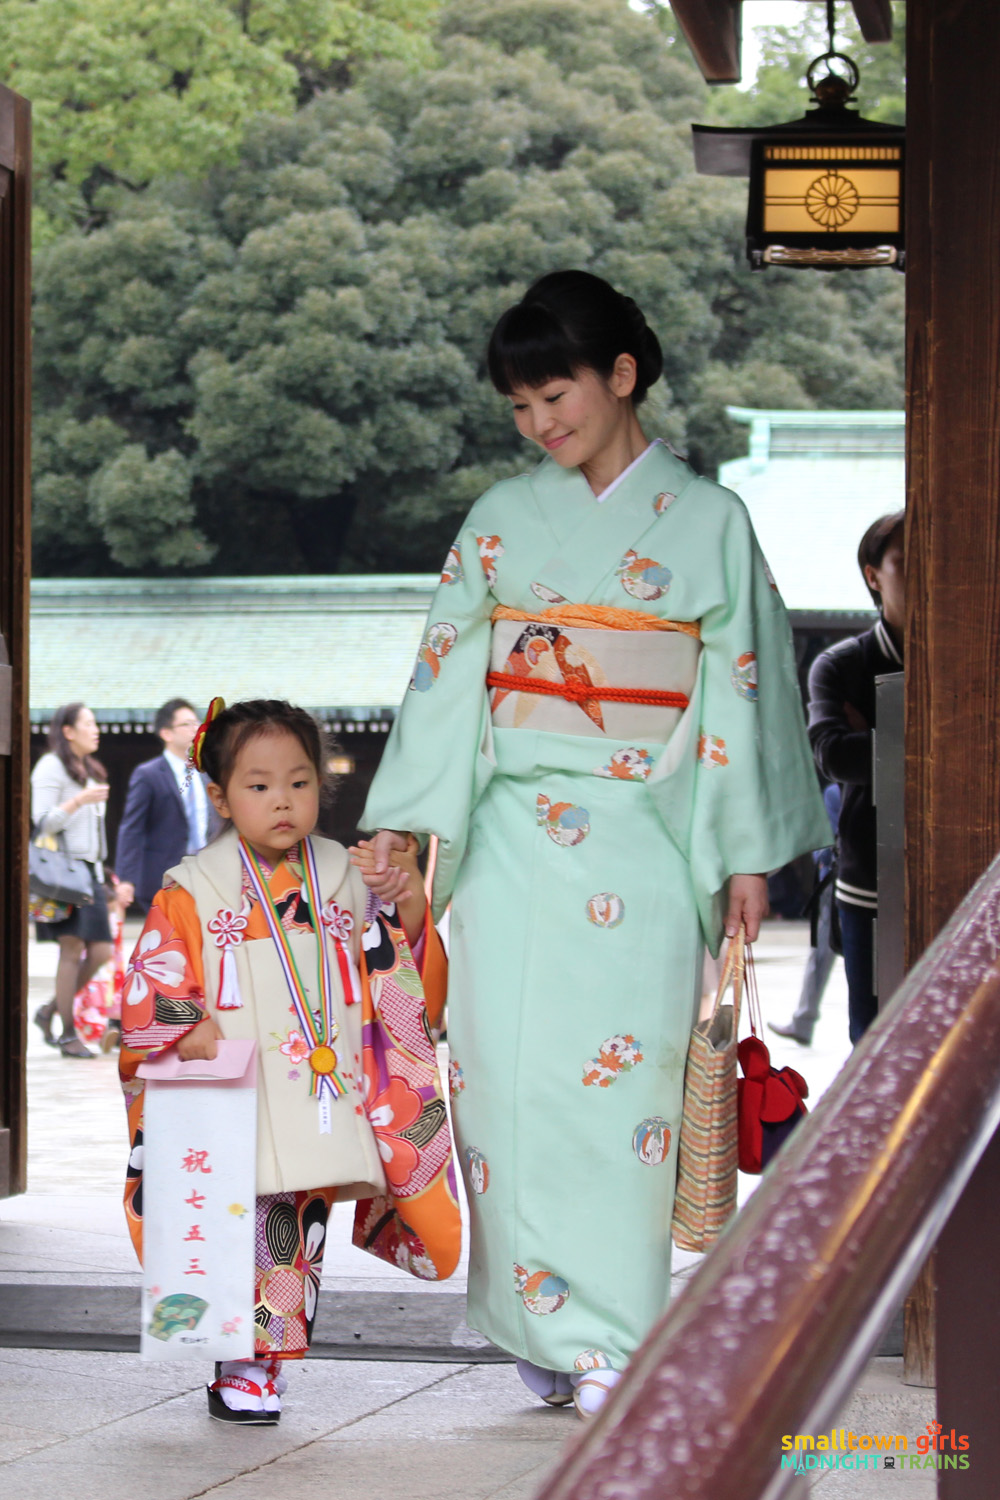 SGMT Japan Tokyo Meiji Shrine 04 mother and daughter